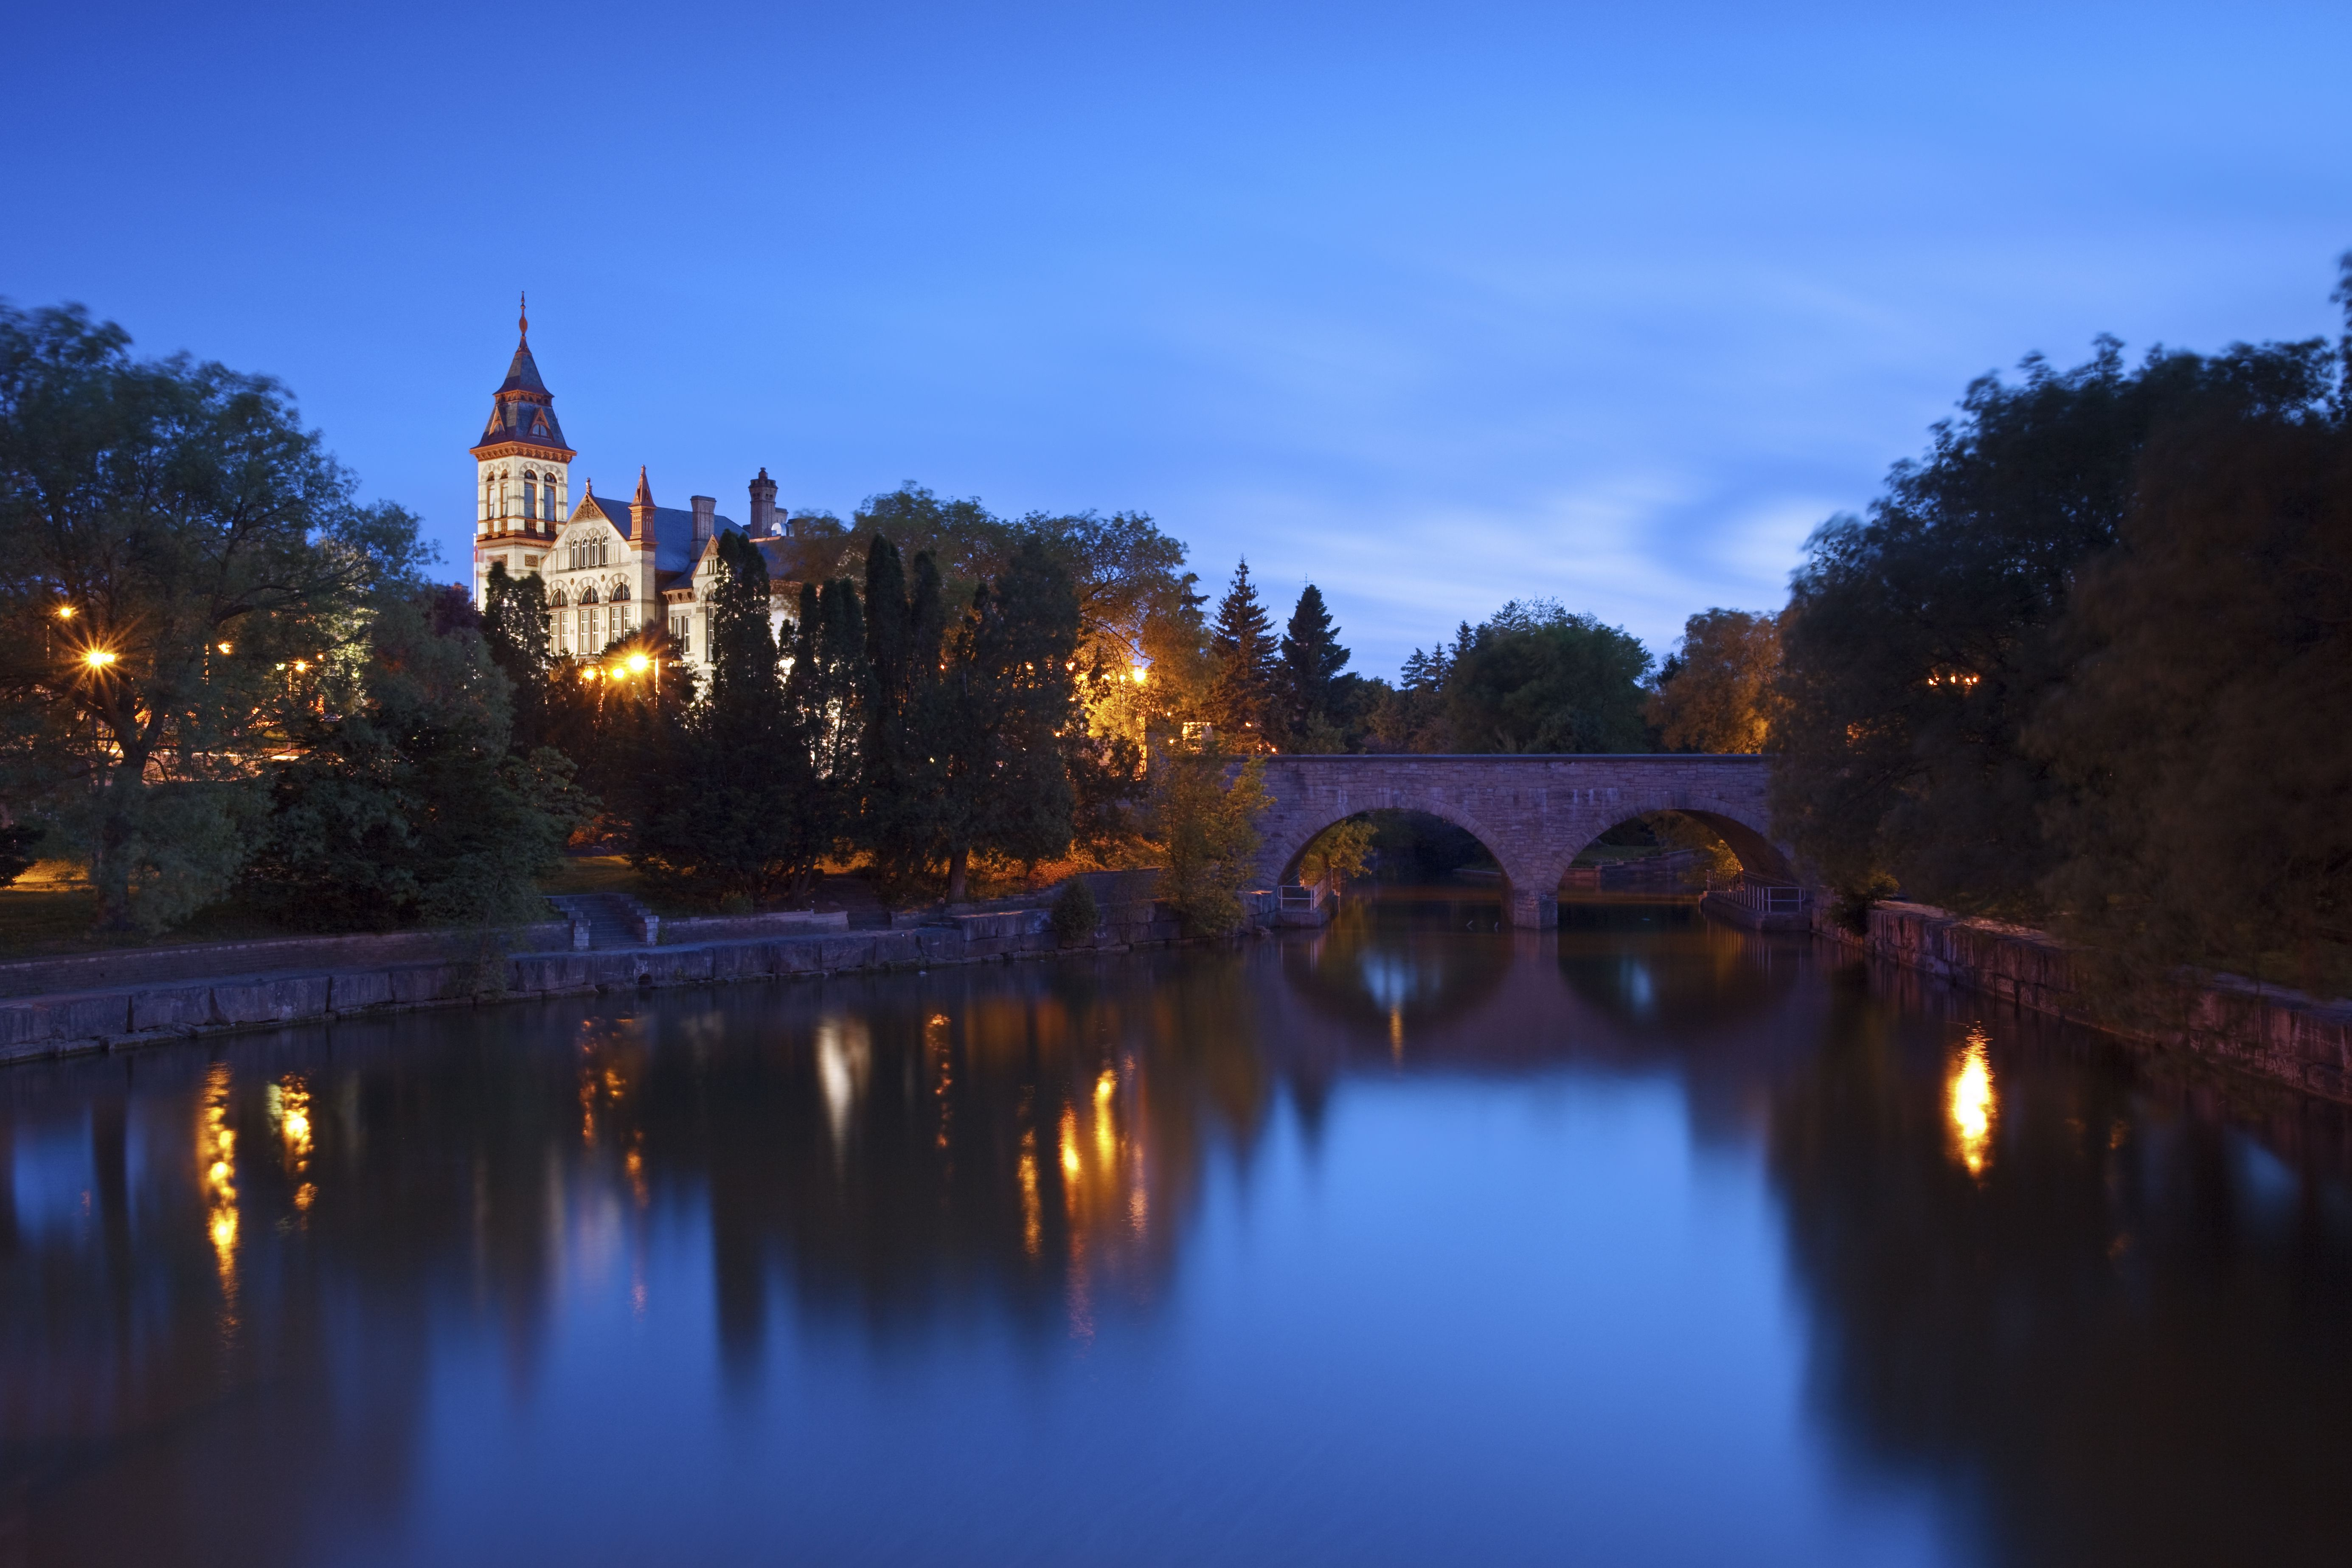 A night view of the Stratford courthouse in Stratford Ontario with the Avon river in the foreground